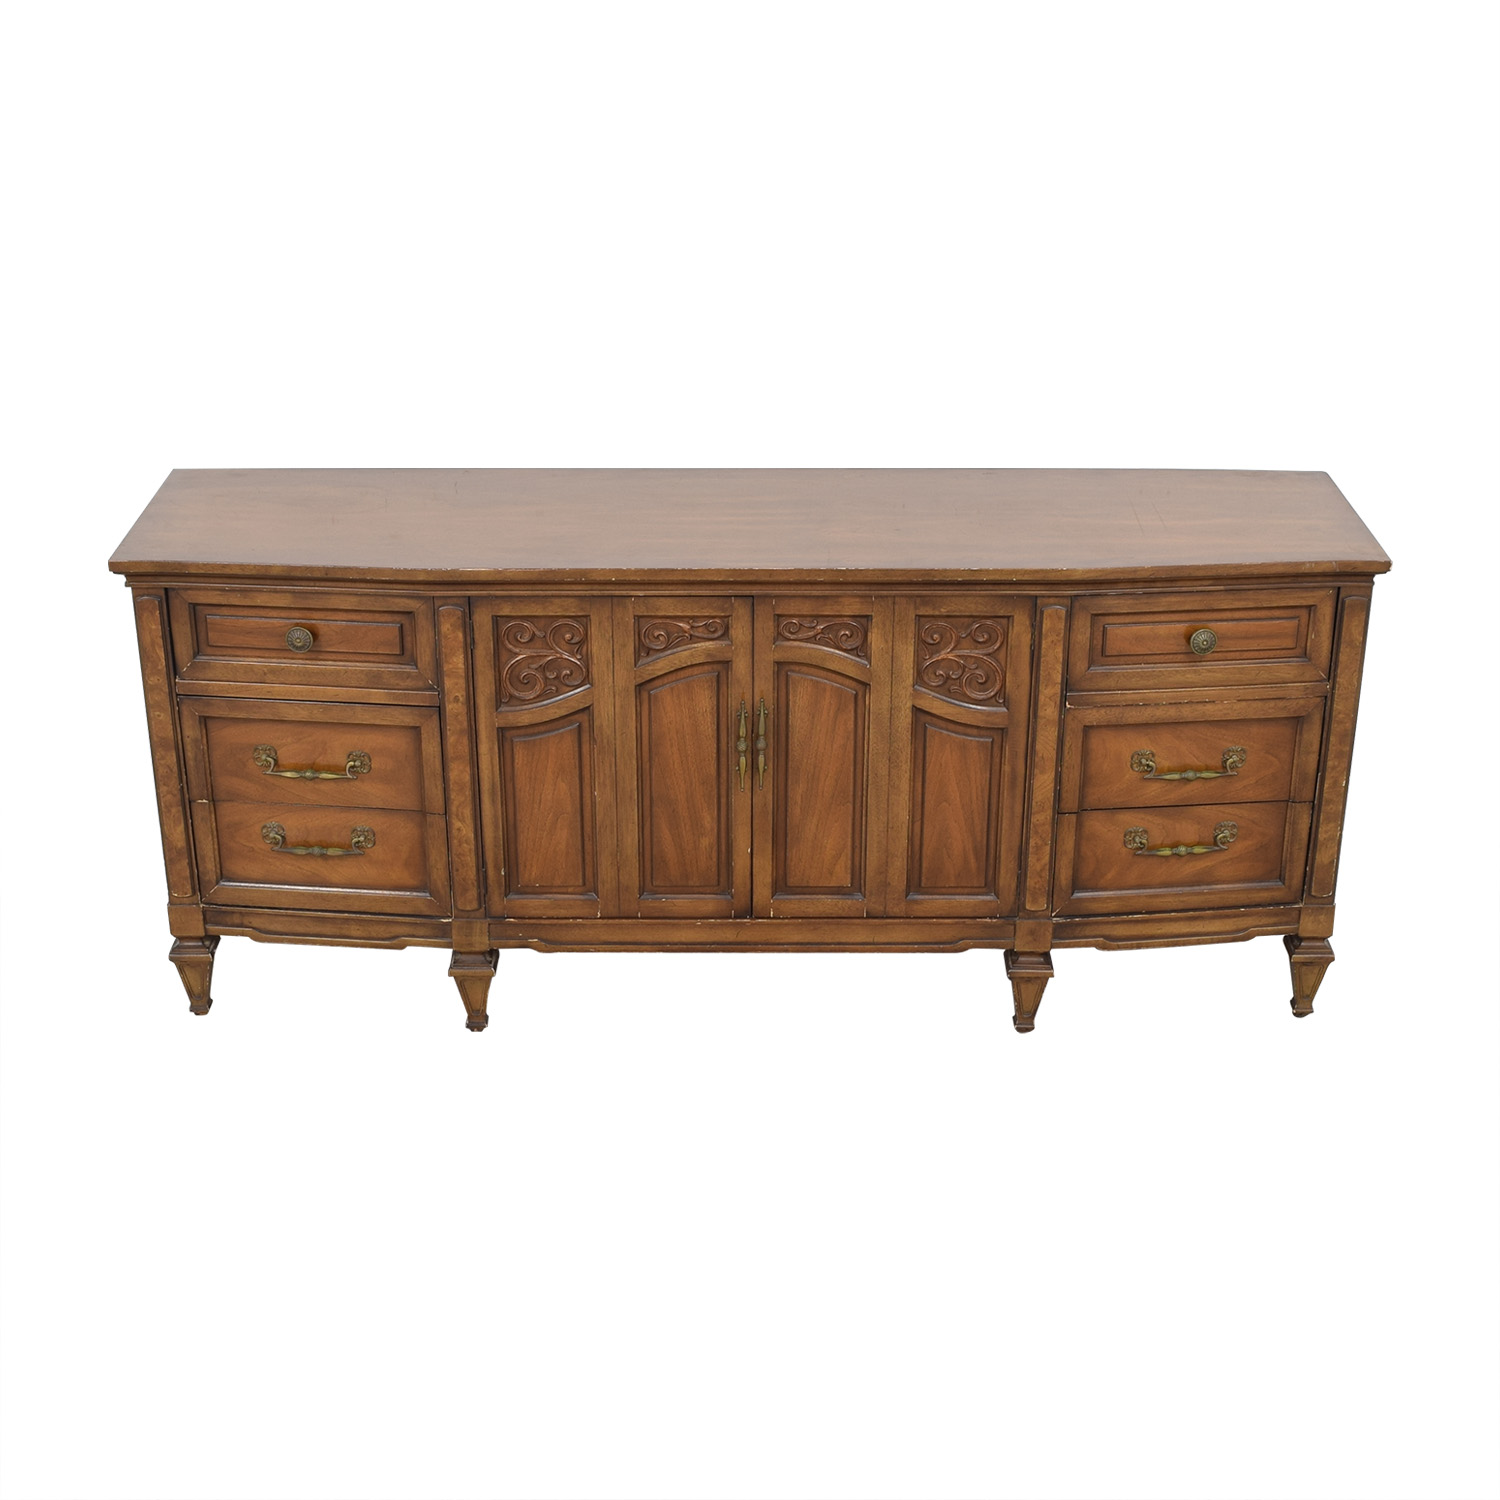 shop Hoke Furniture Company Hoke Furniture Triple Dresser online